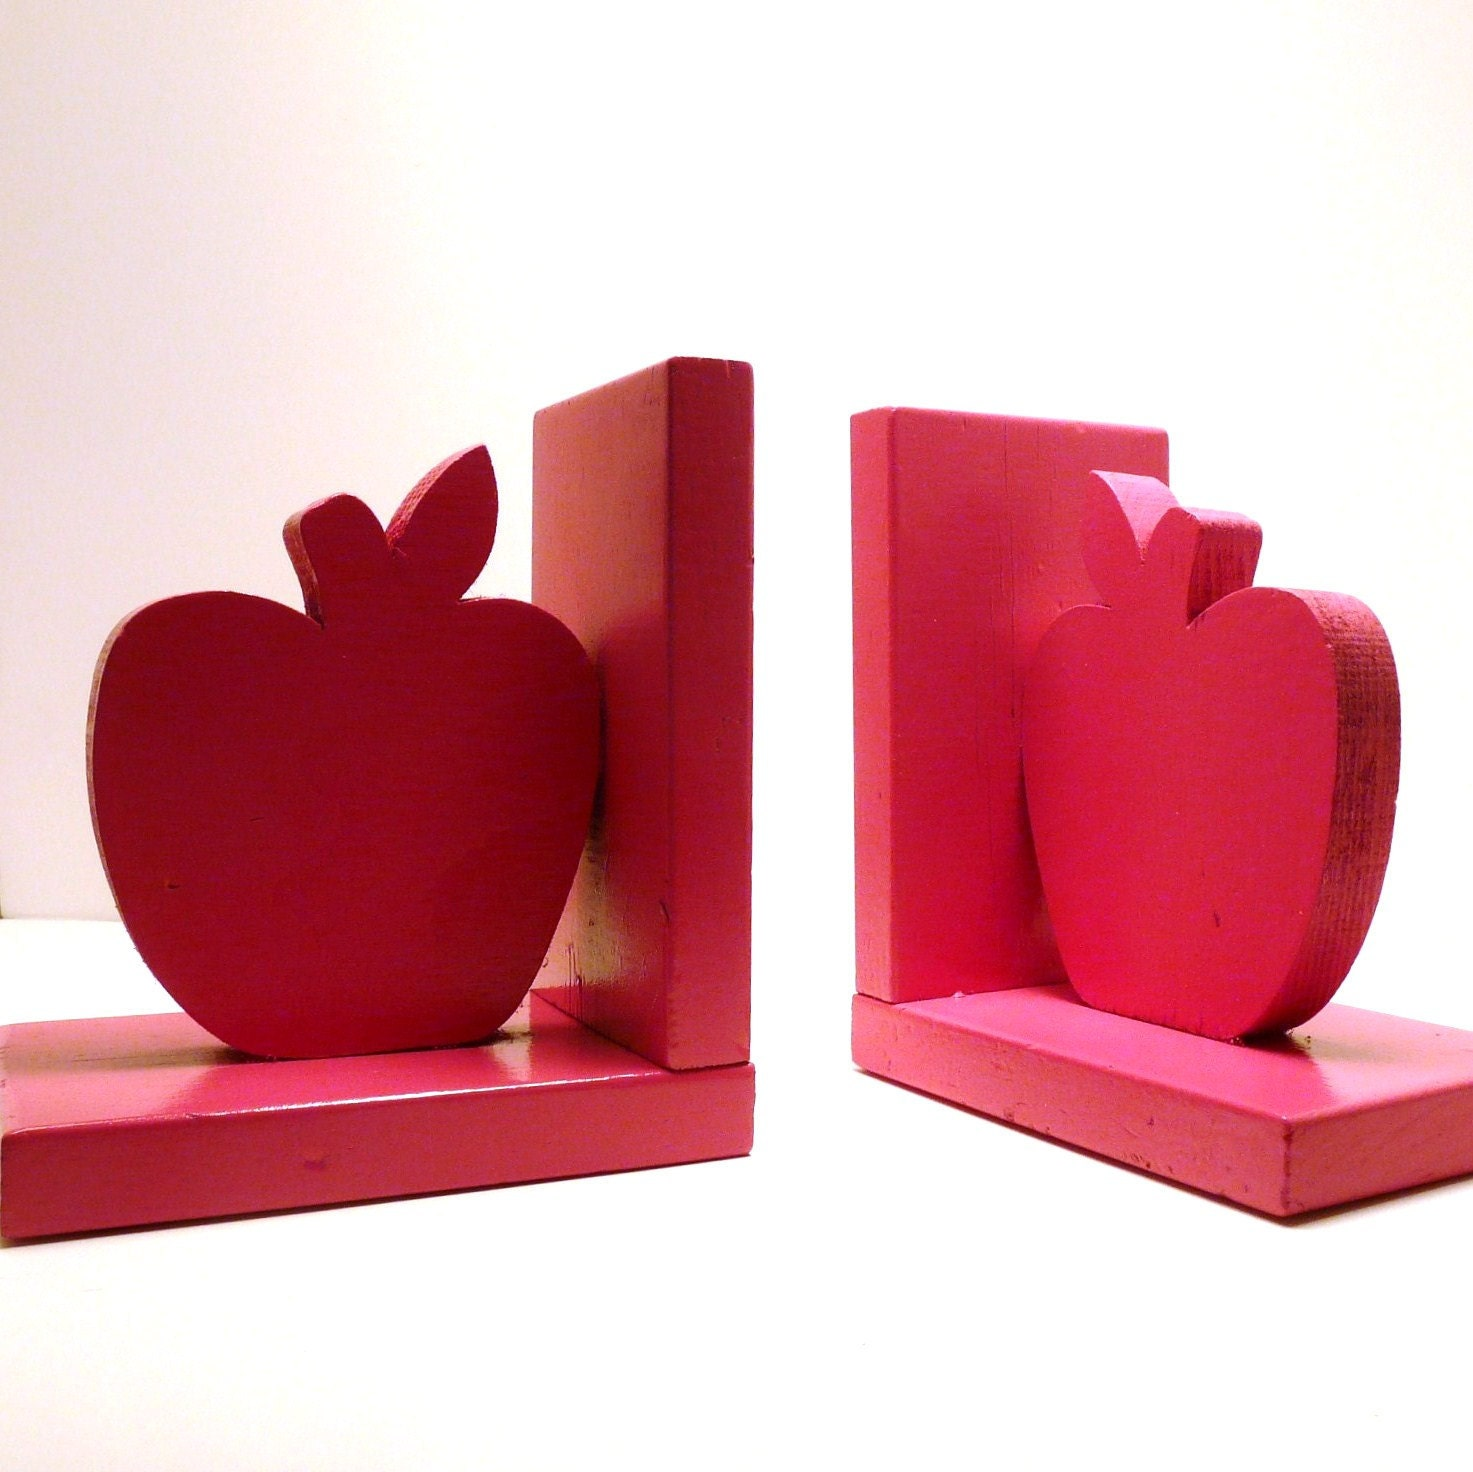 Pink Desk Accessories submited images